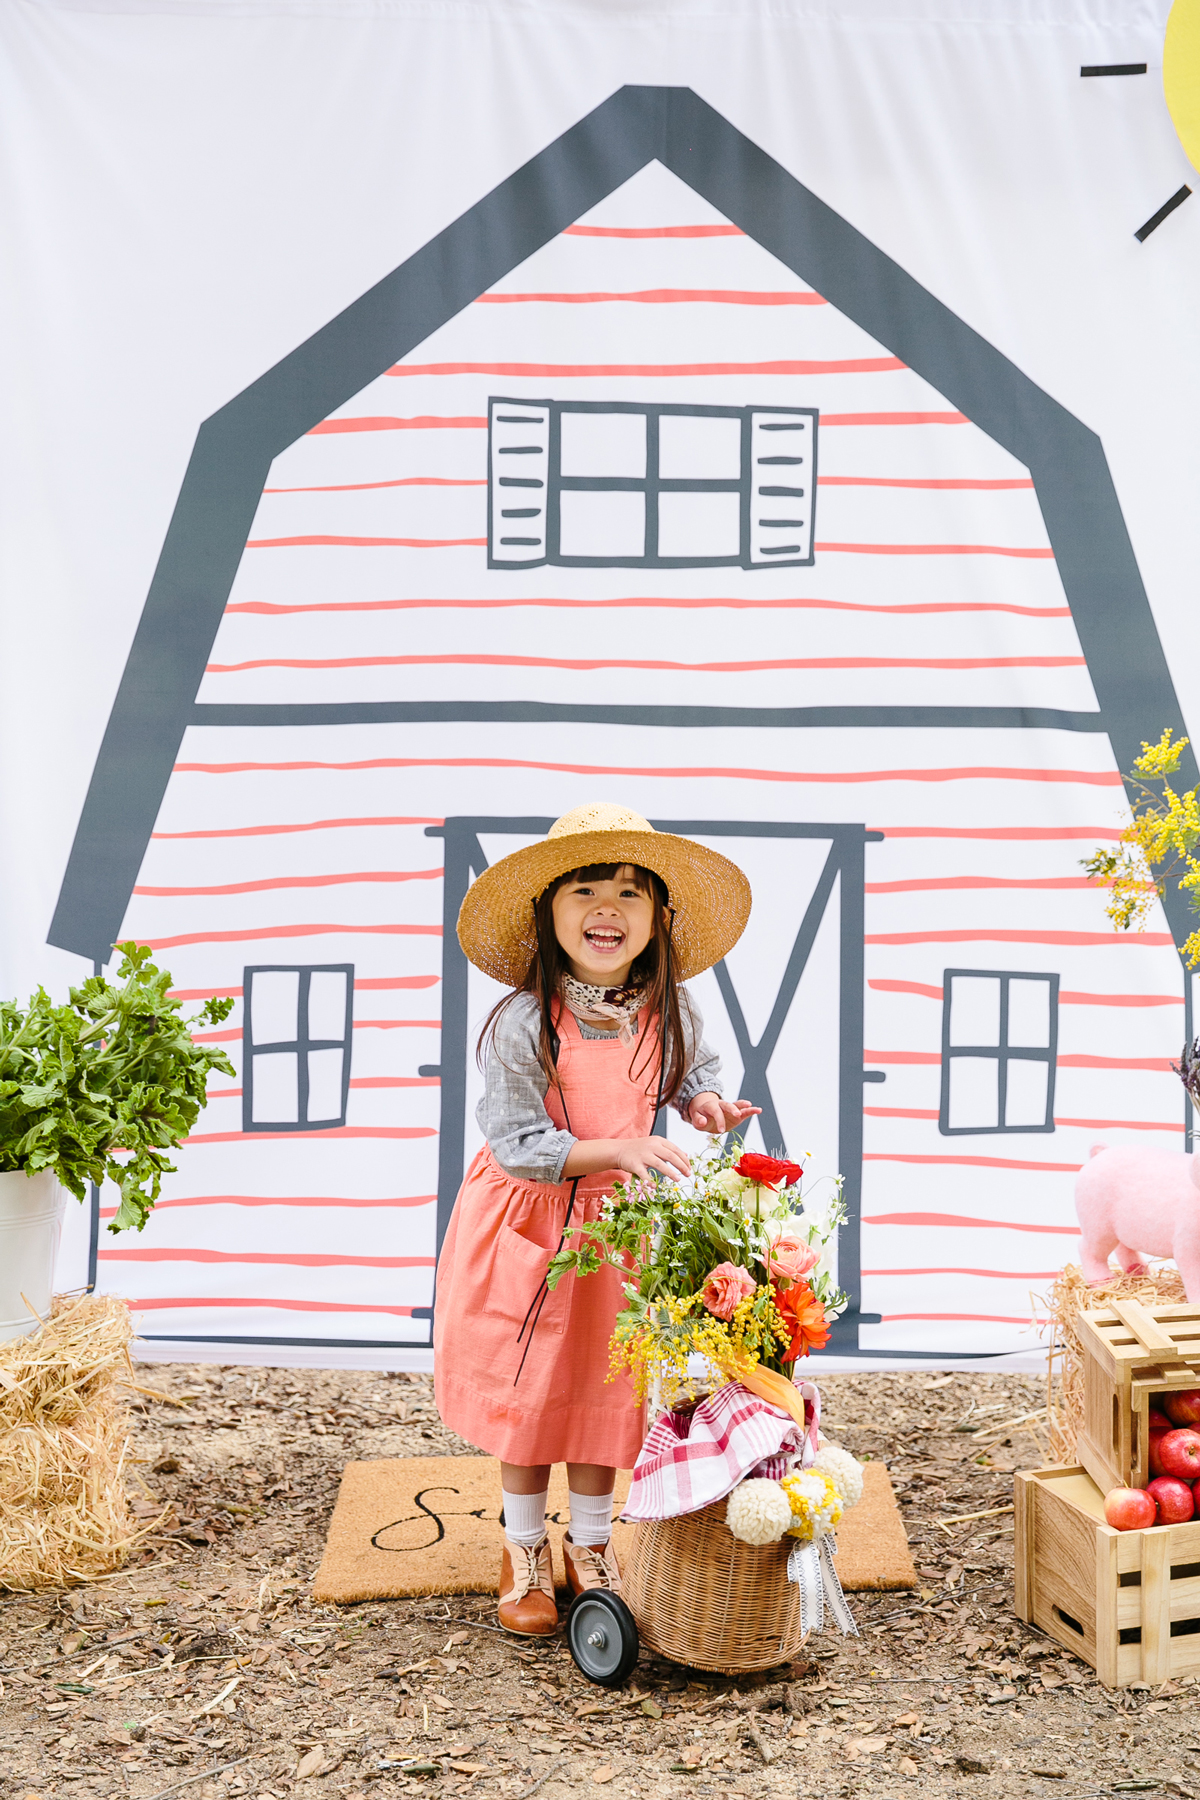 charlottes web childrens party girl wearing straw hat posing in front of photo booth